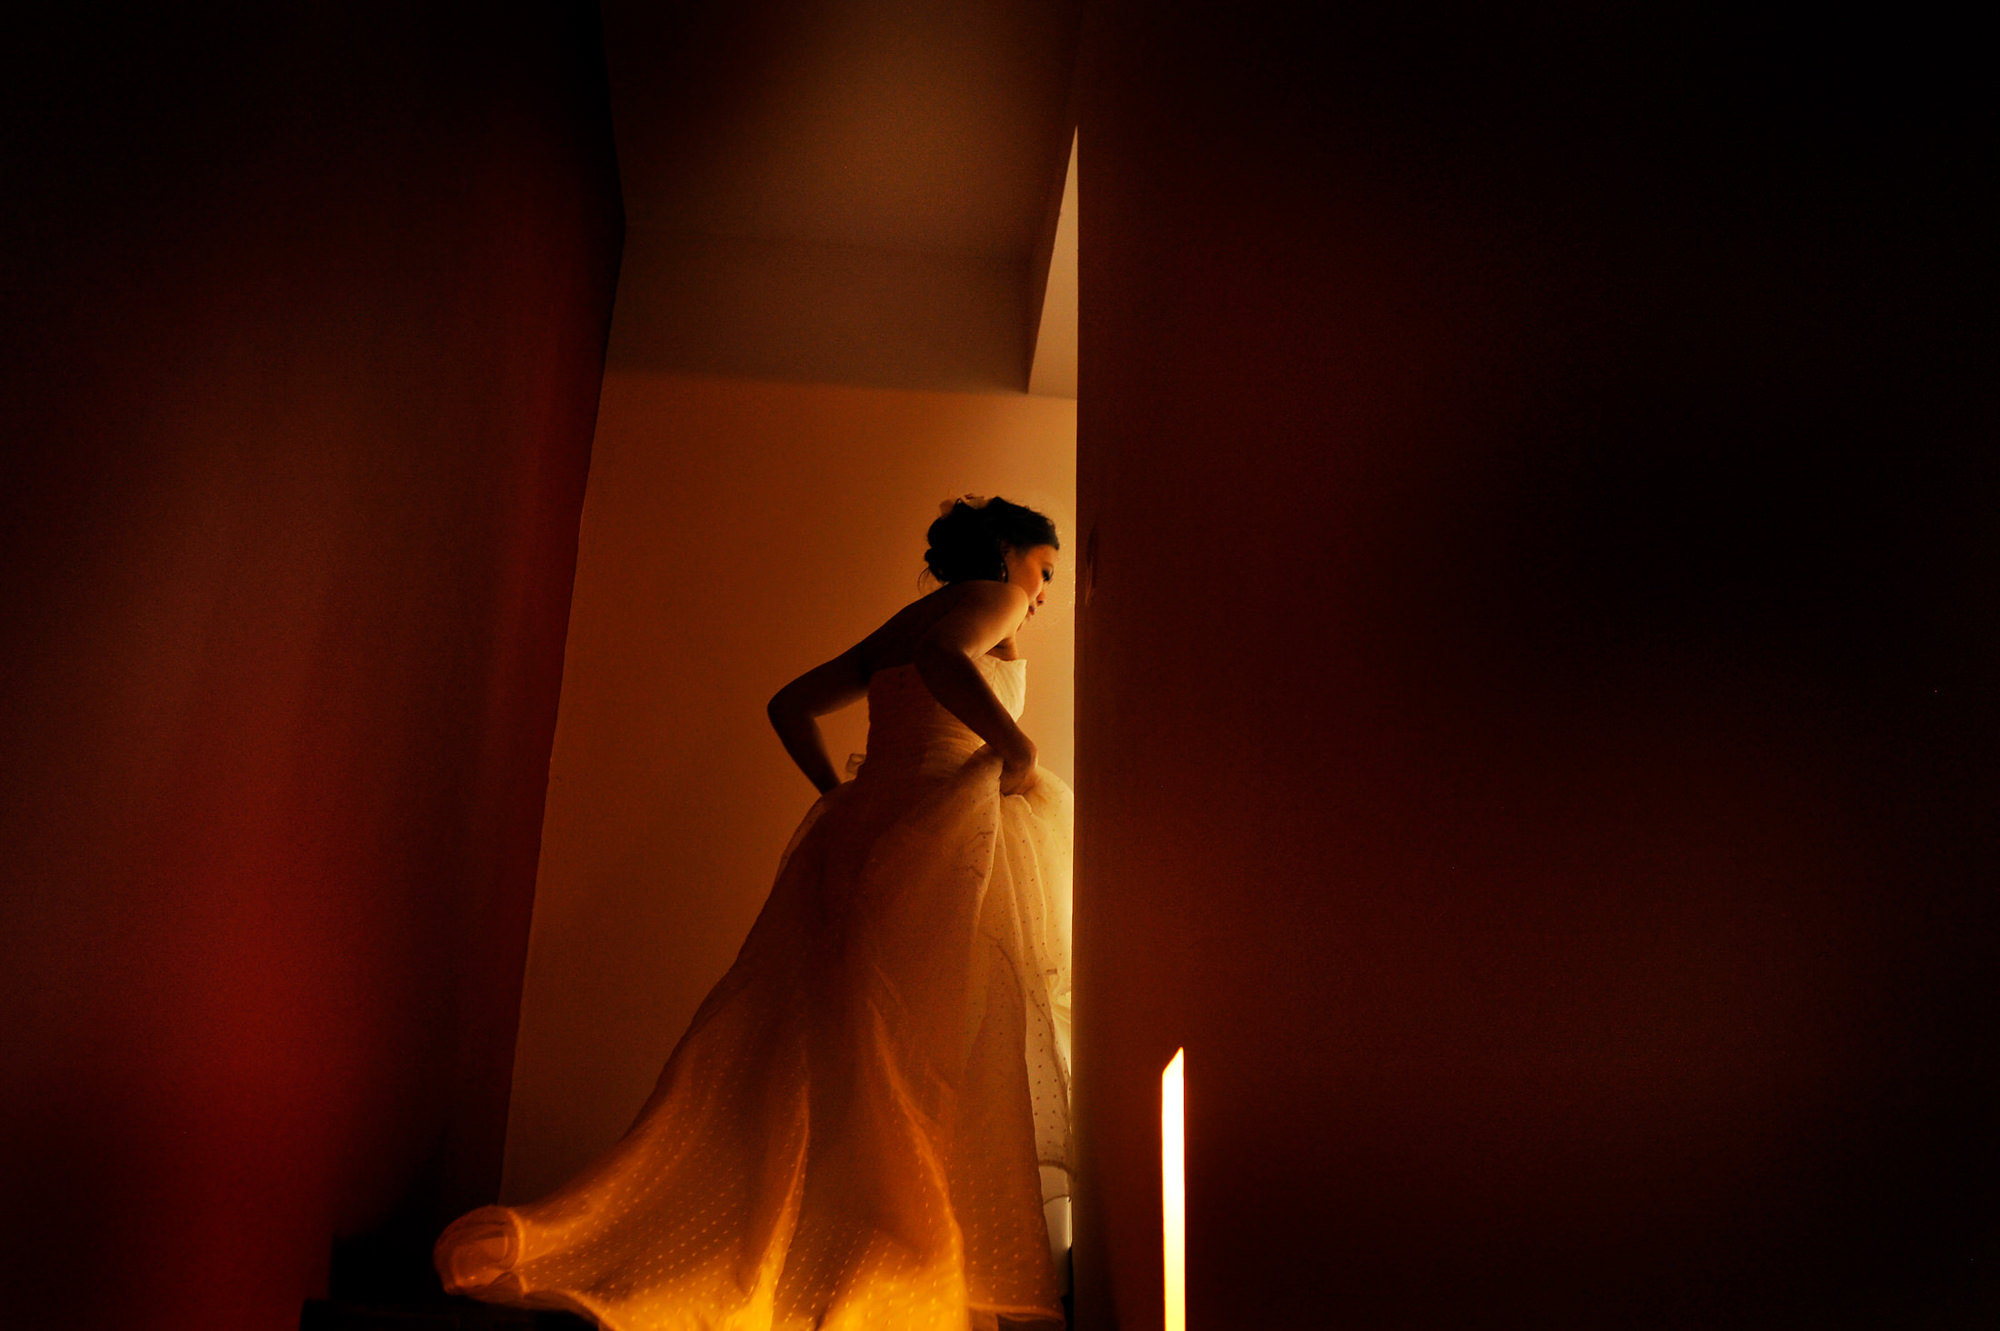 Bride turning the corner into golden light - Daniel Aguilar Photographer